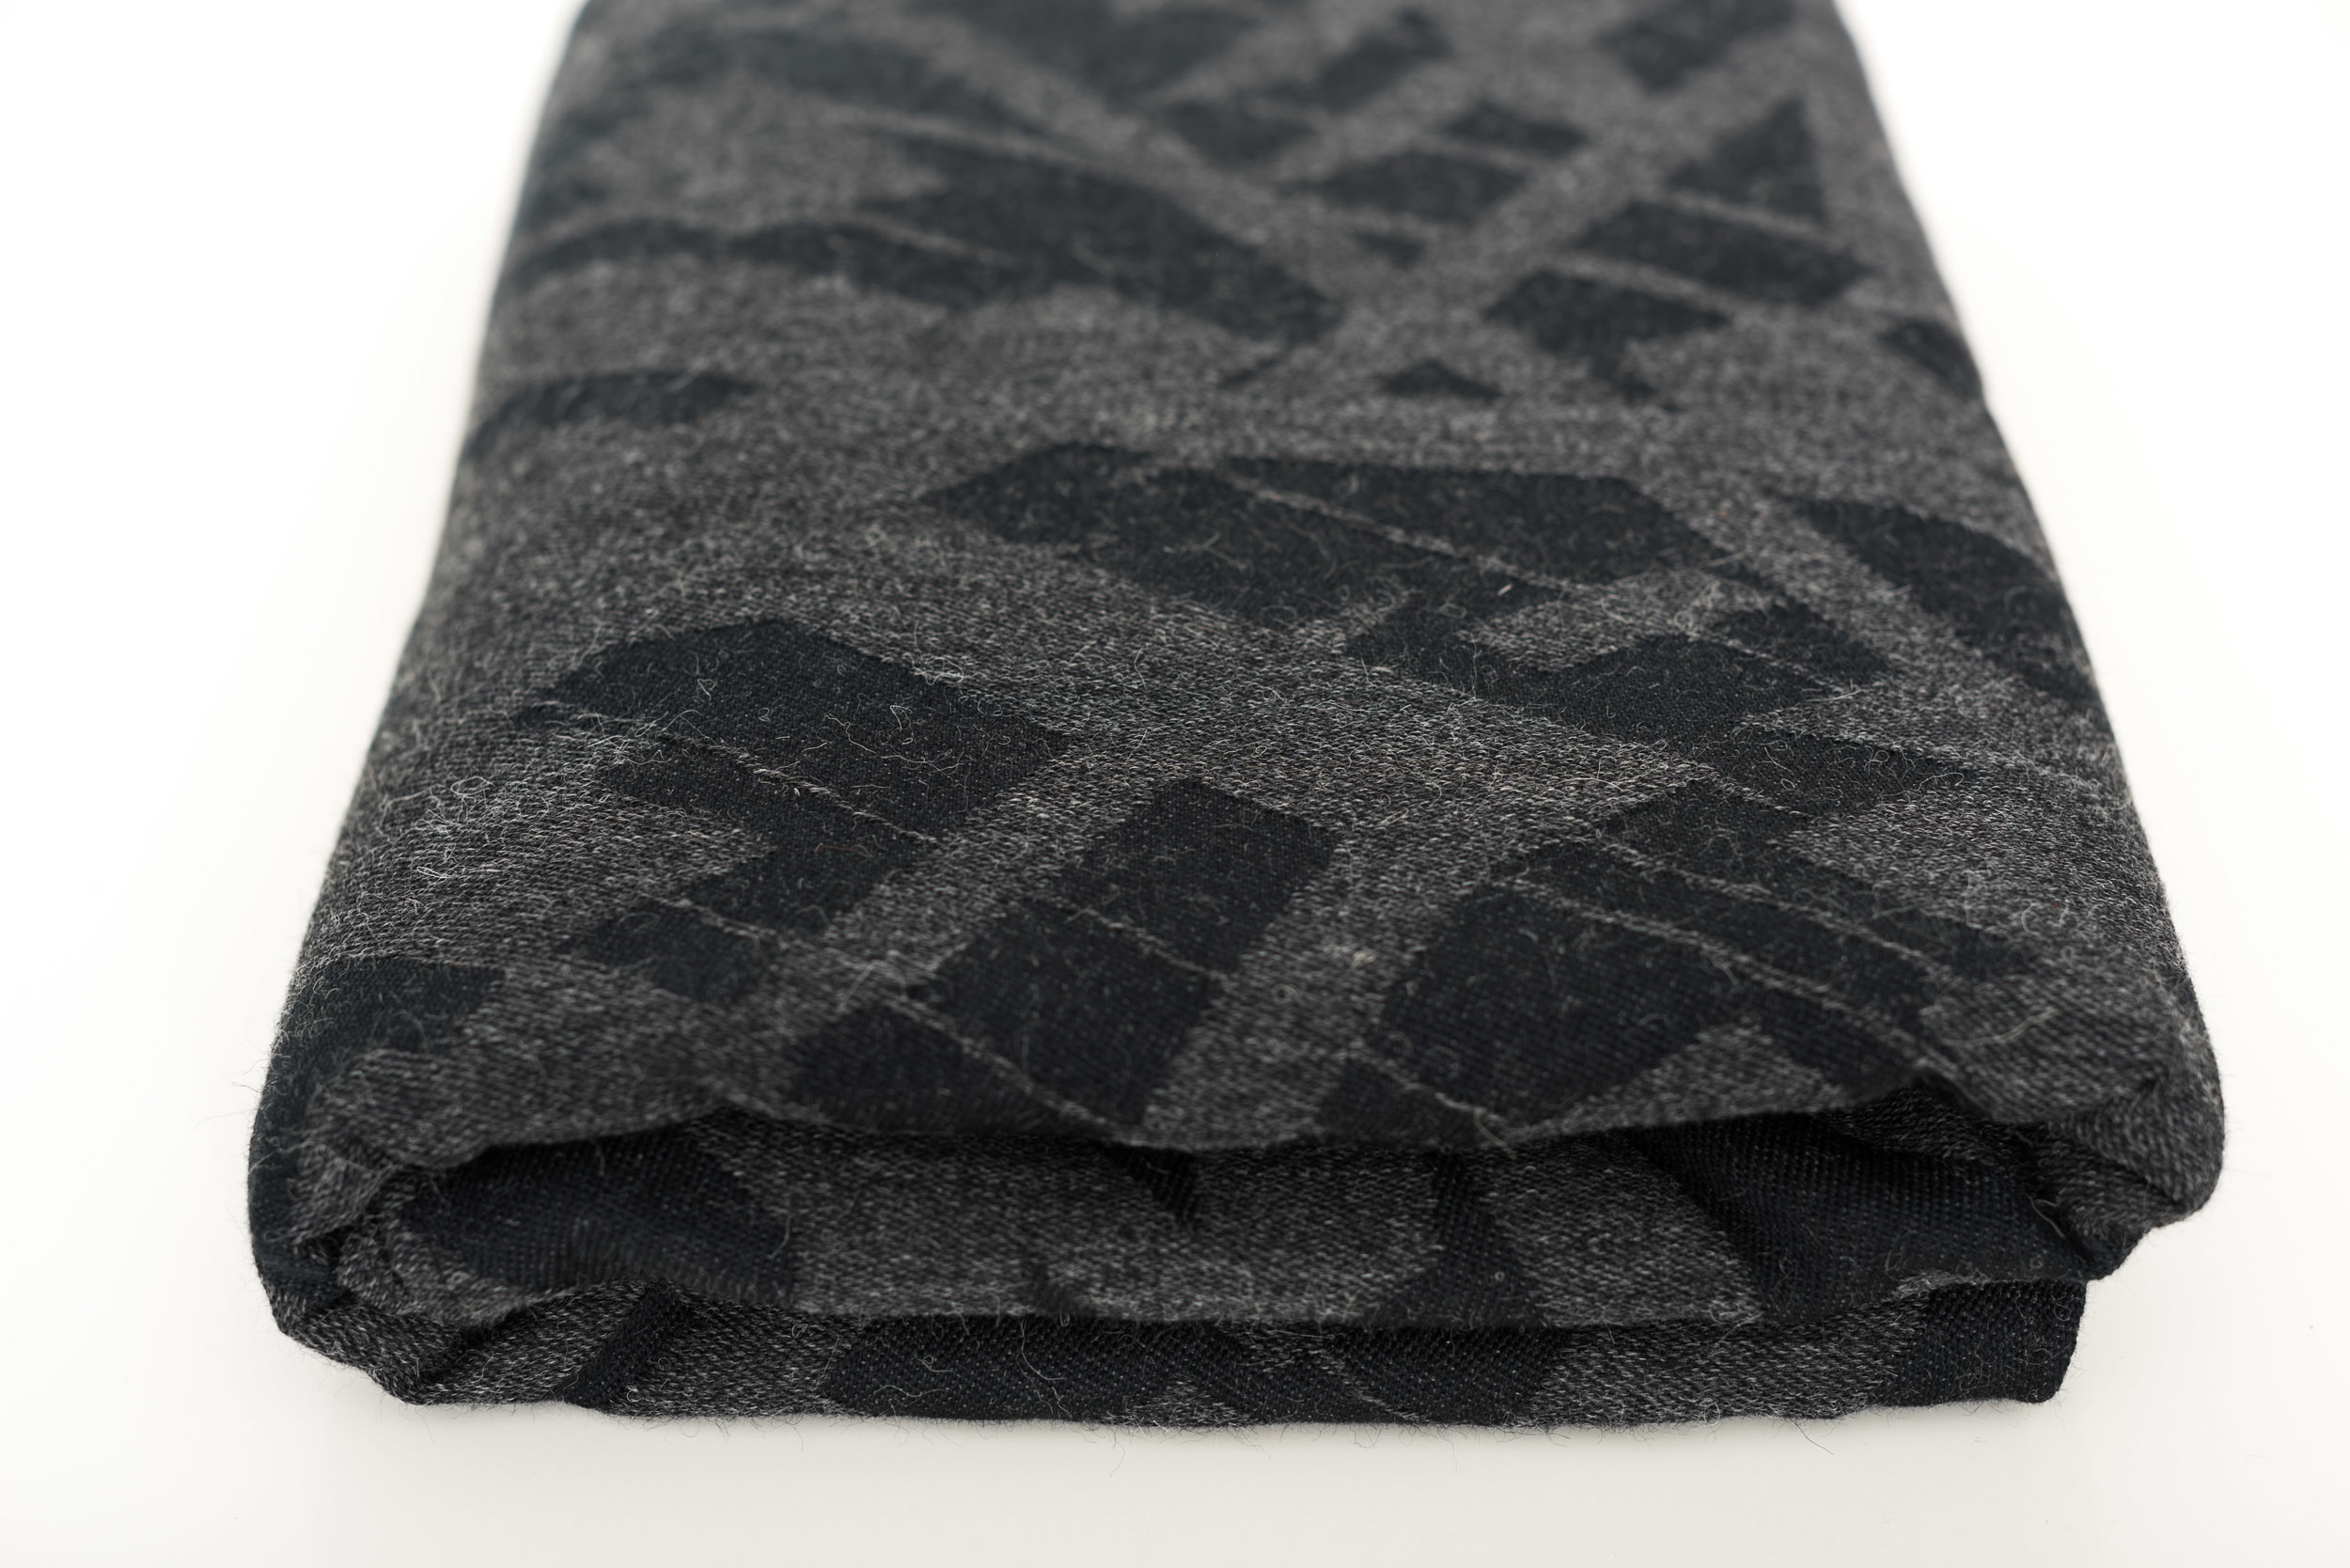 Futurism Charcoal · 66% cotton 34% alpaca  Handwash, lay flat to dry  Futurism Charcoal Alpaca is shockingly thin for a wool wrap.The right amount of thickness combined with the temperature regulating properties of wool make it suitable for most climates. This cotton and alpaca mix create a wrap that breaks in wonderfully soft and drapey. The added magic of a black warp takes this wrap to the next level.